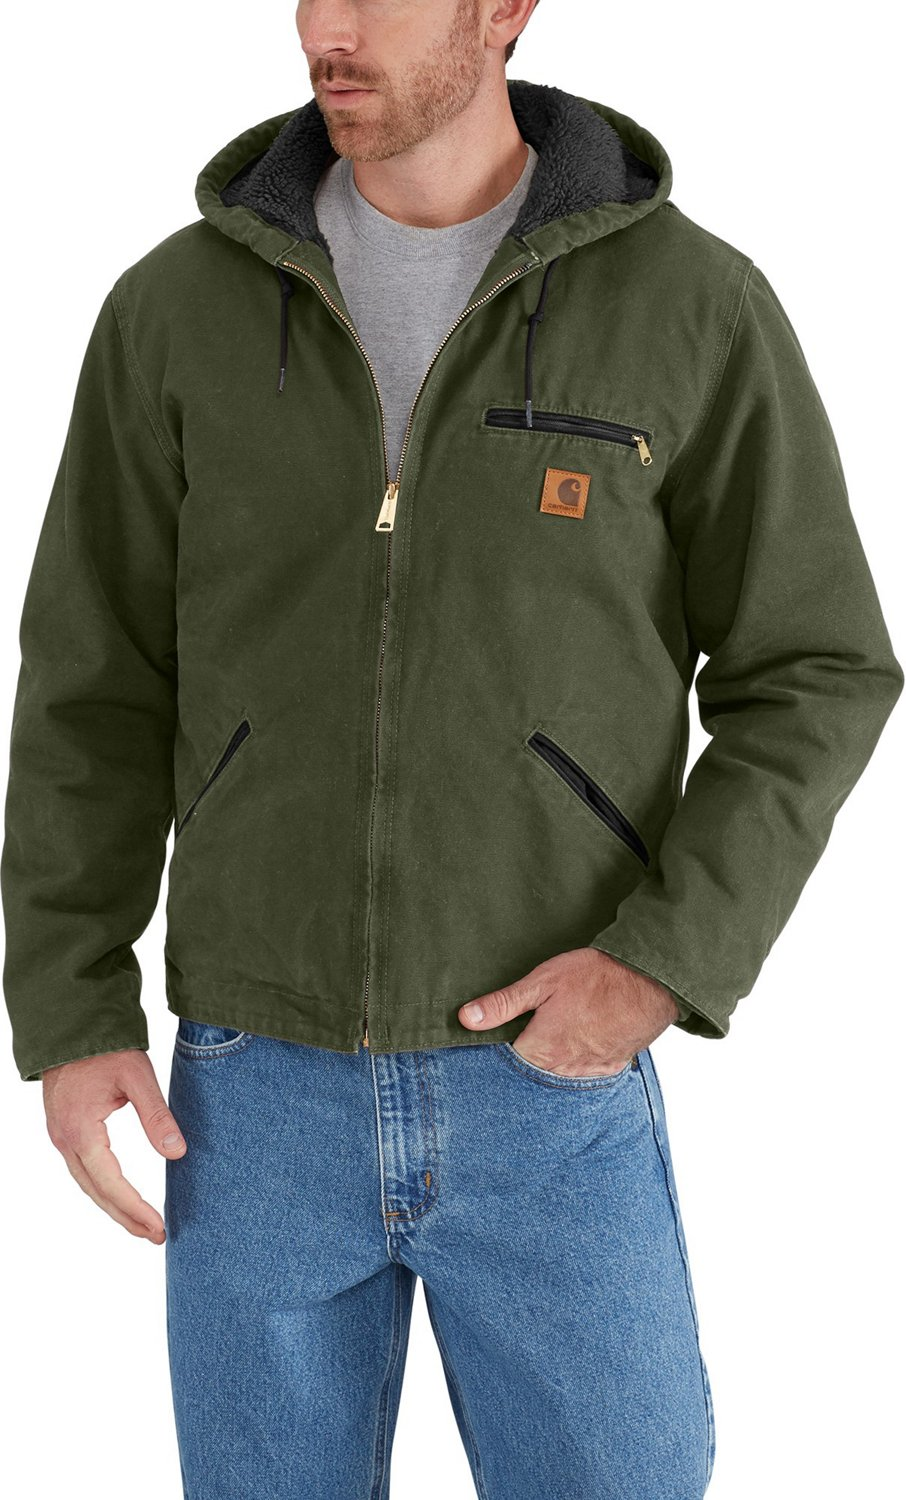 623124a1b Display product reviews for Carhartt Men's Sandstone Sierra Jacket